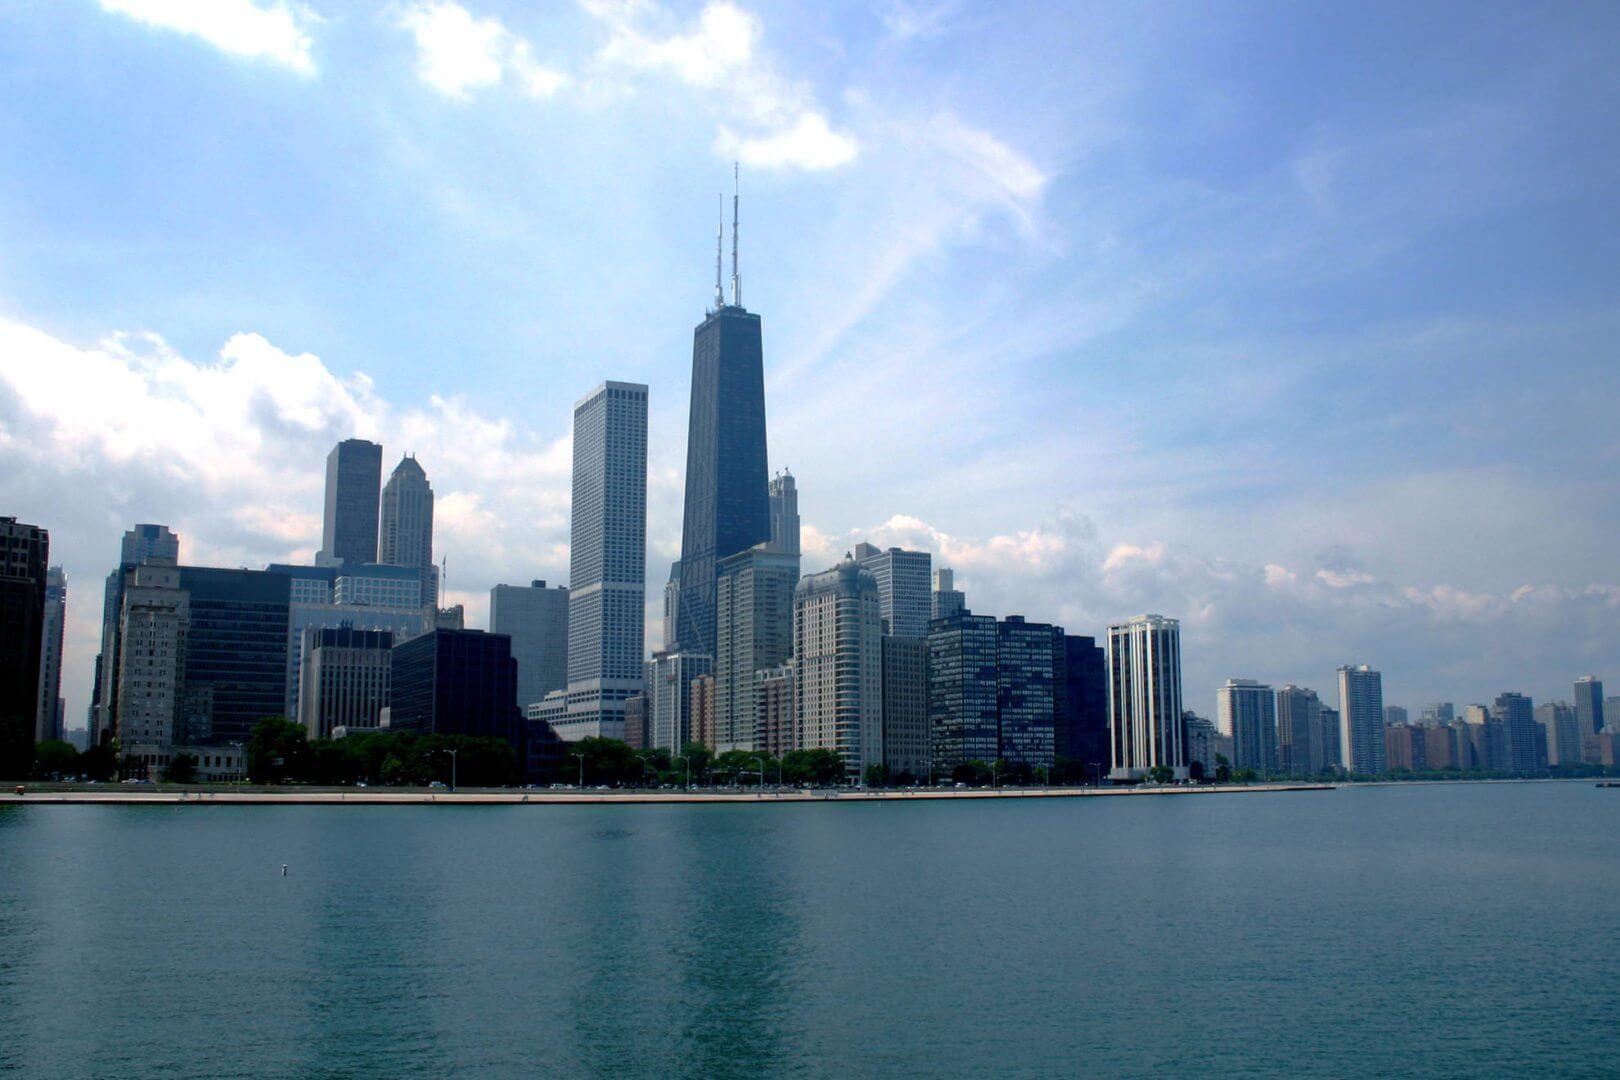 chicago office space market, chicago real estate representation